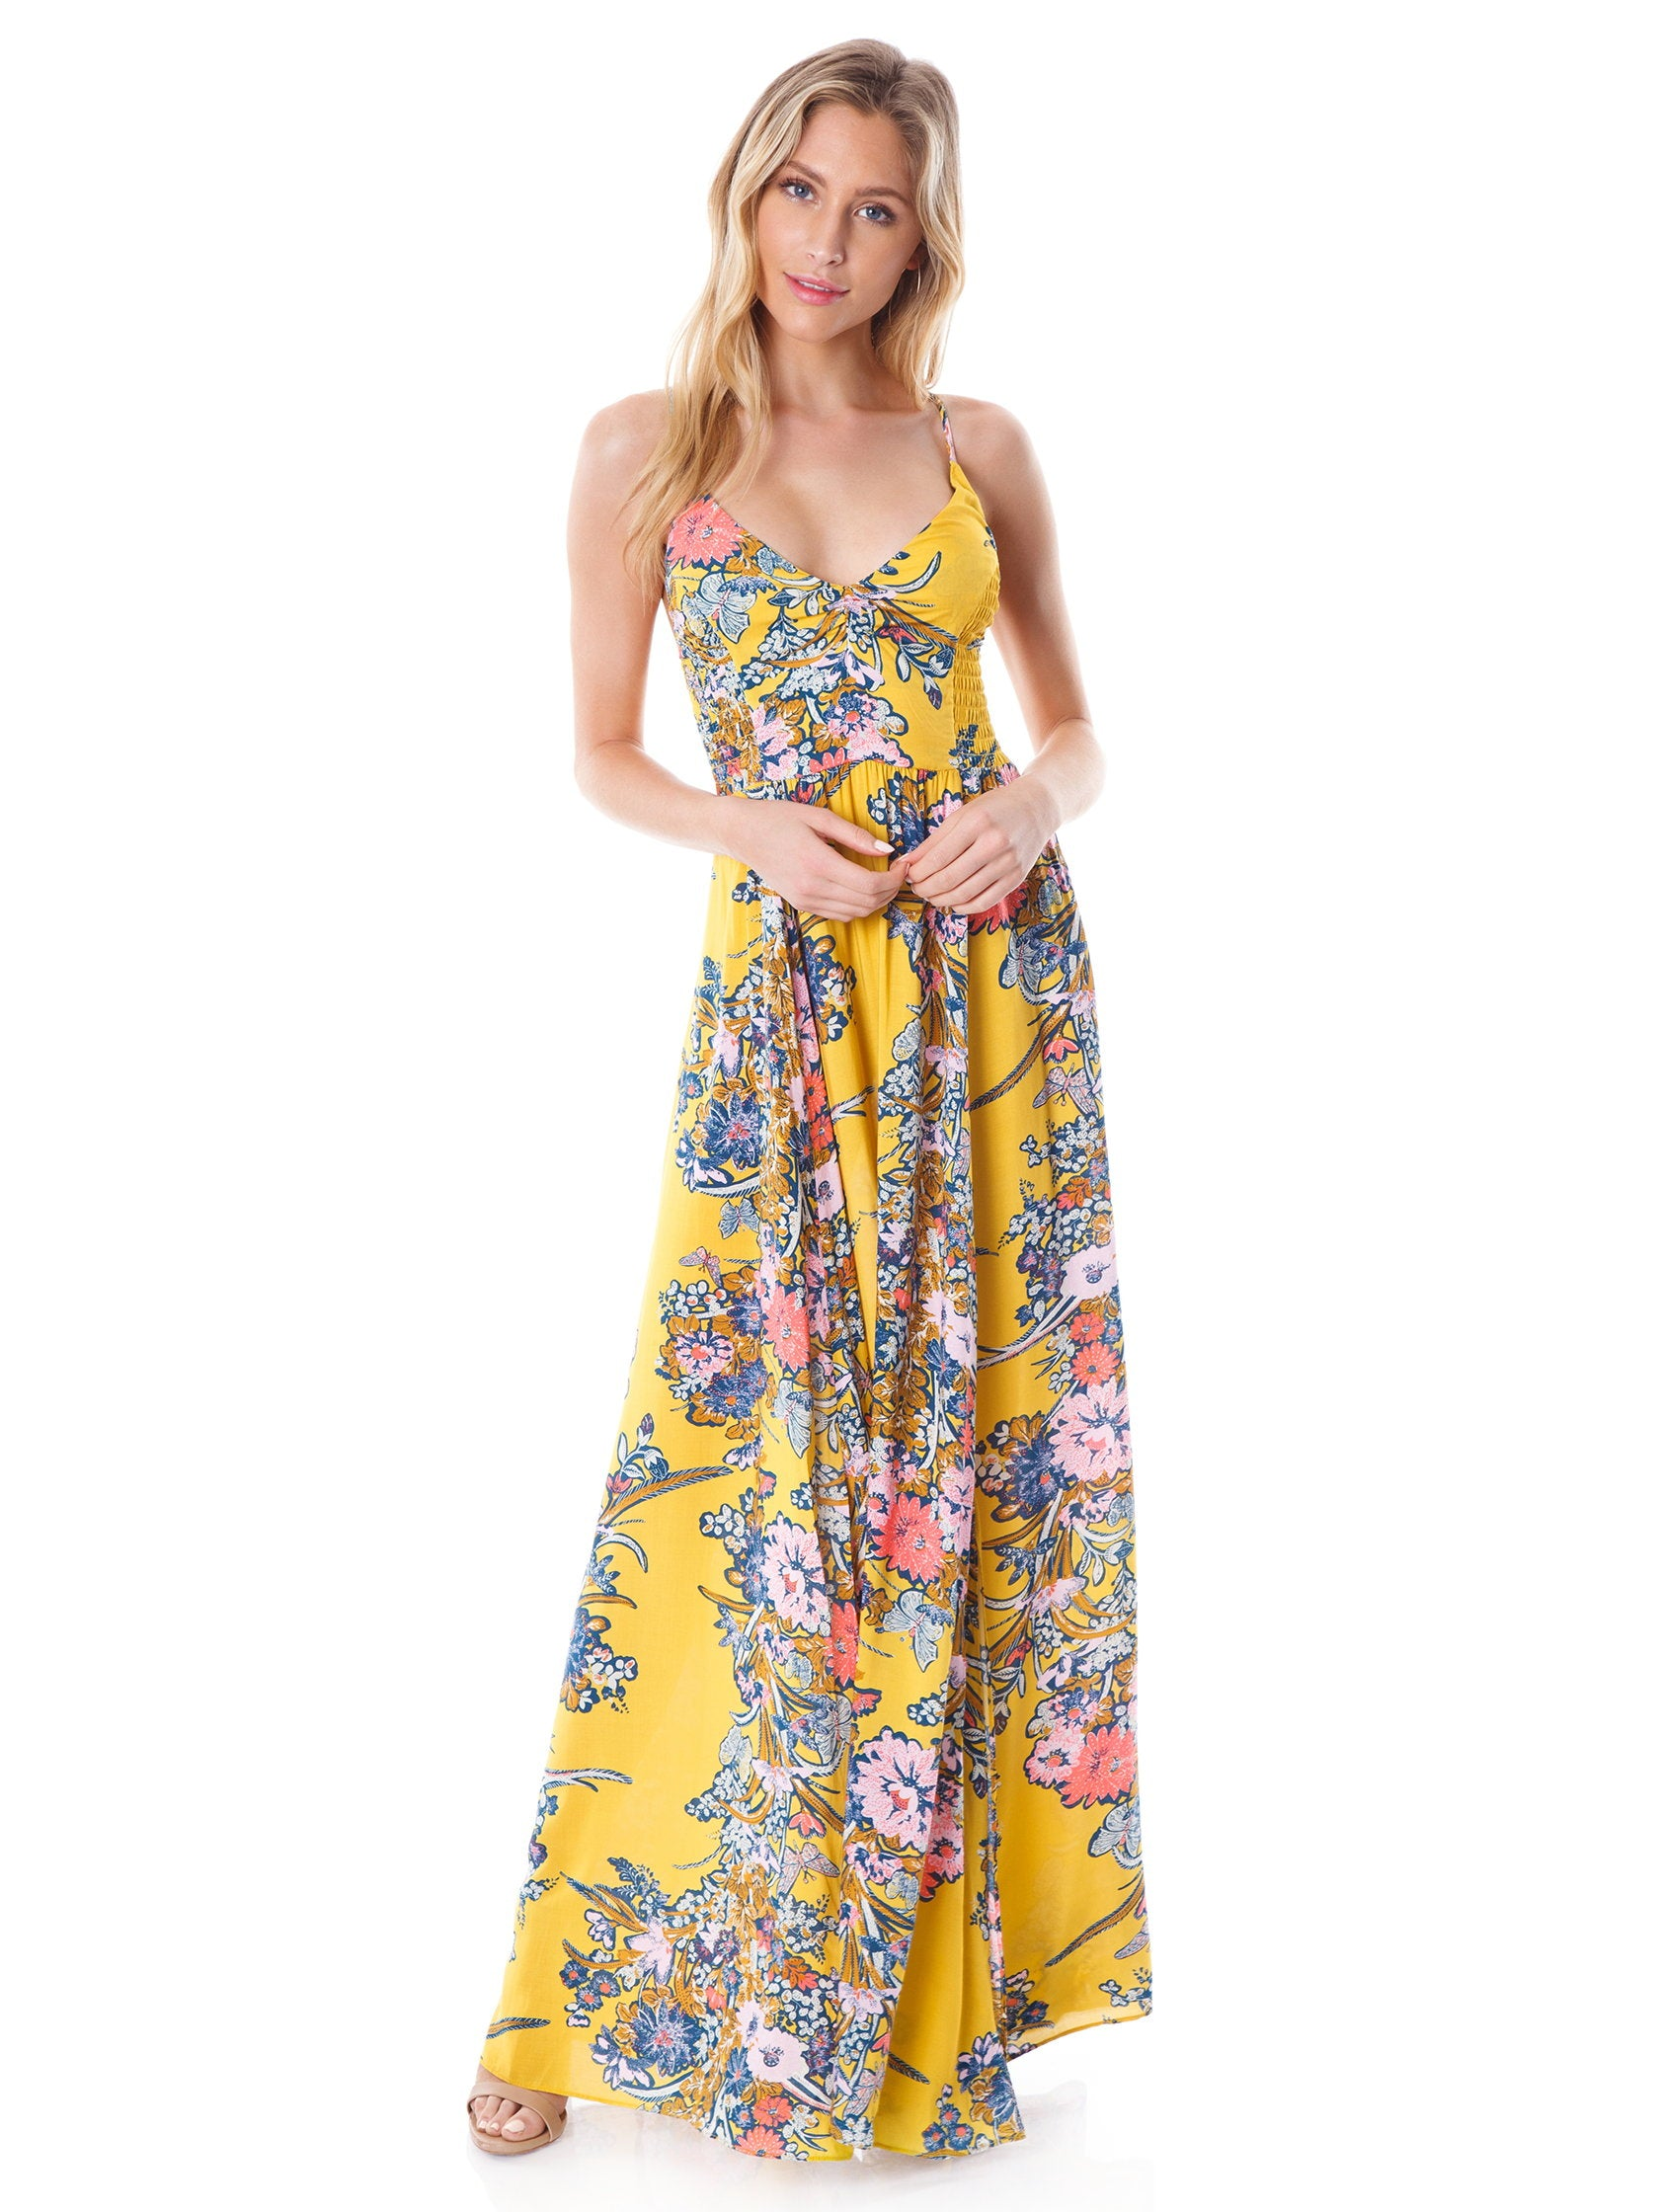 692069b6a59 Women outfit in a dress rental from Free People called Through The Vine  Printed Maxi Dress